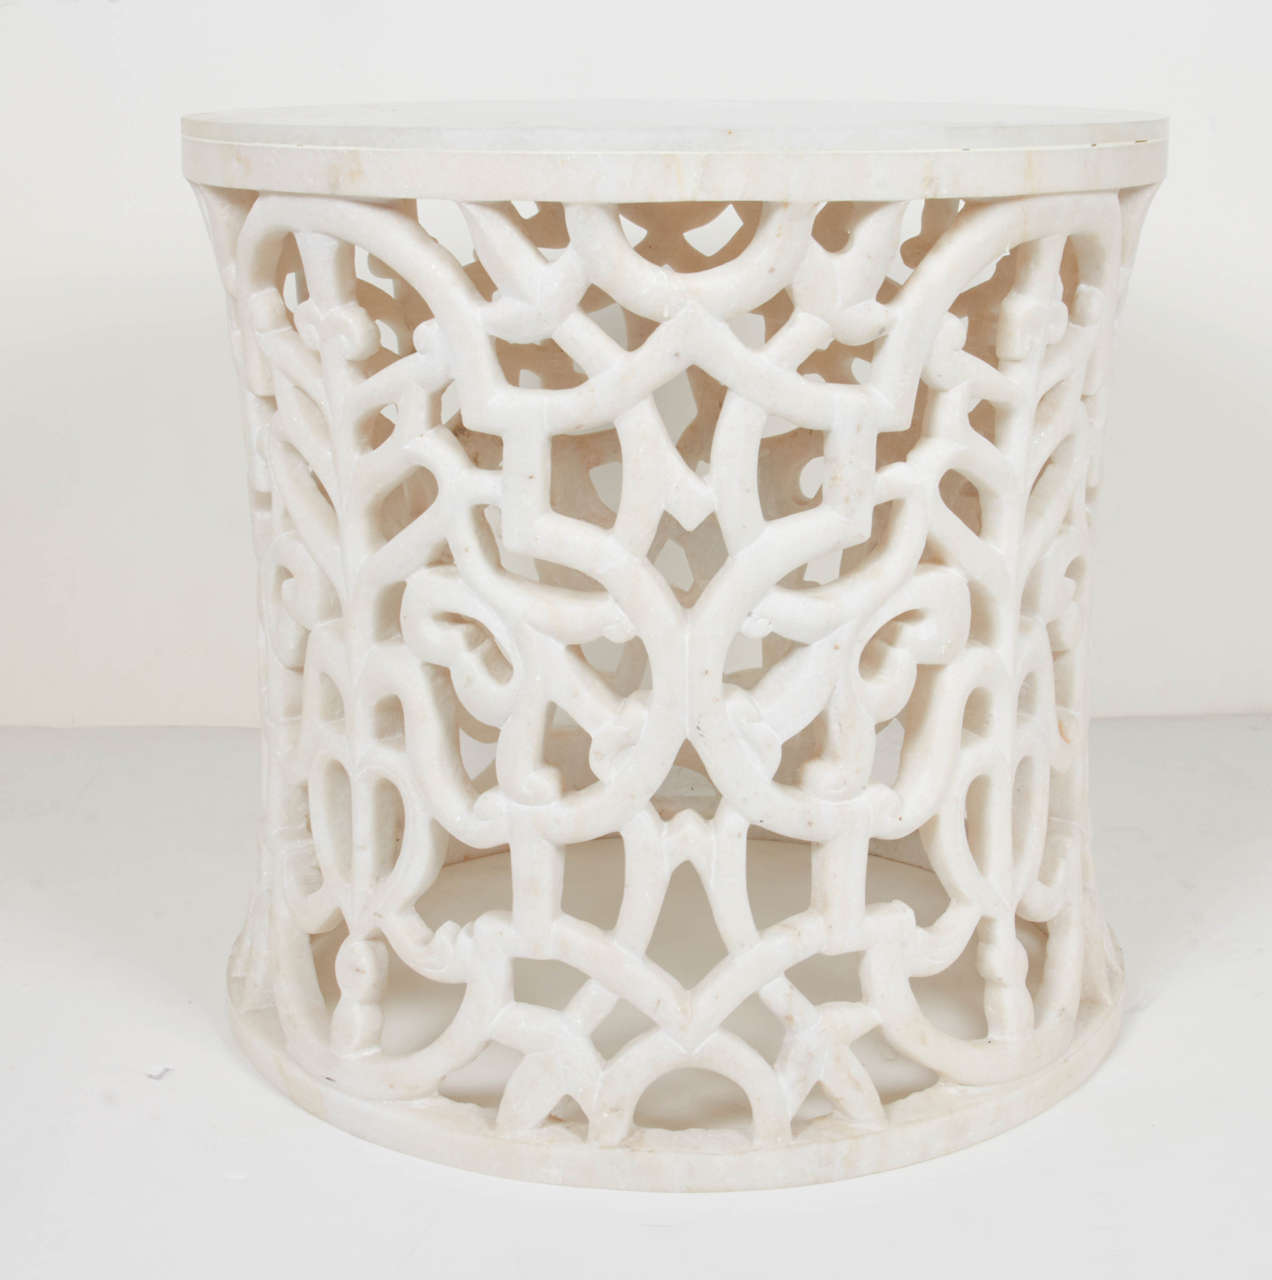 Arabesque Carved Marble Table With Pedestal Design At 1stdibs